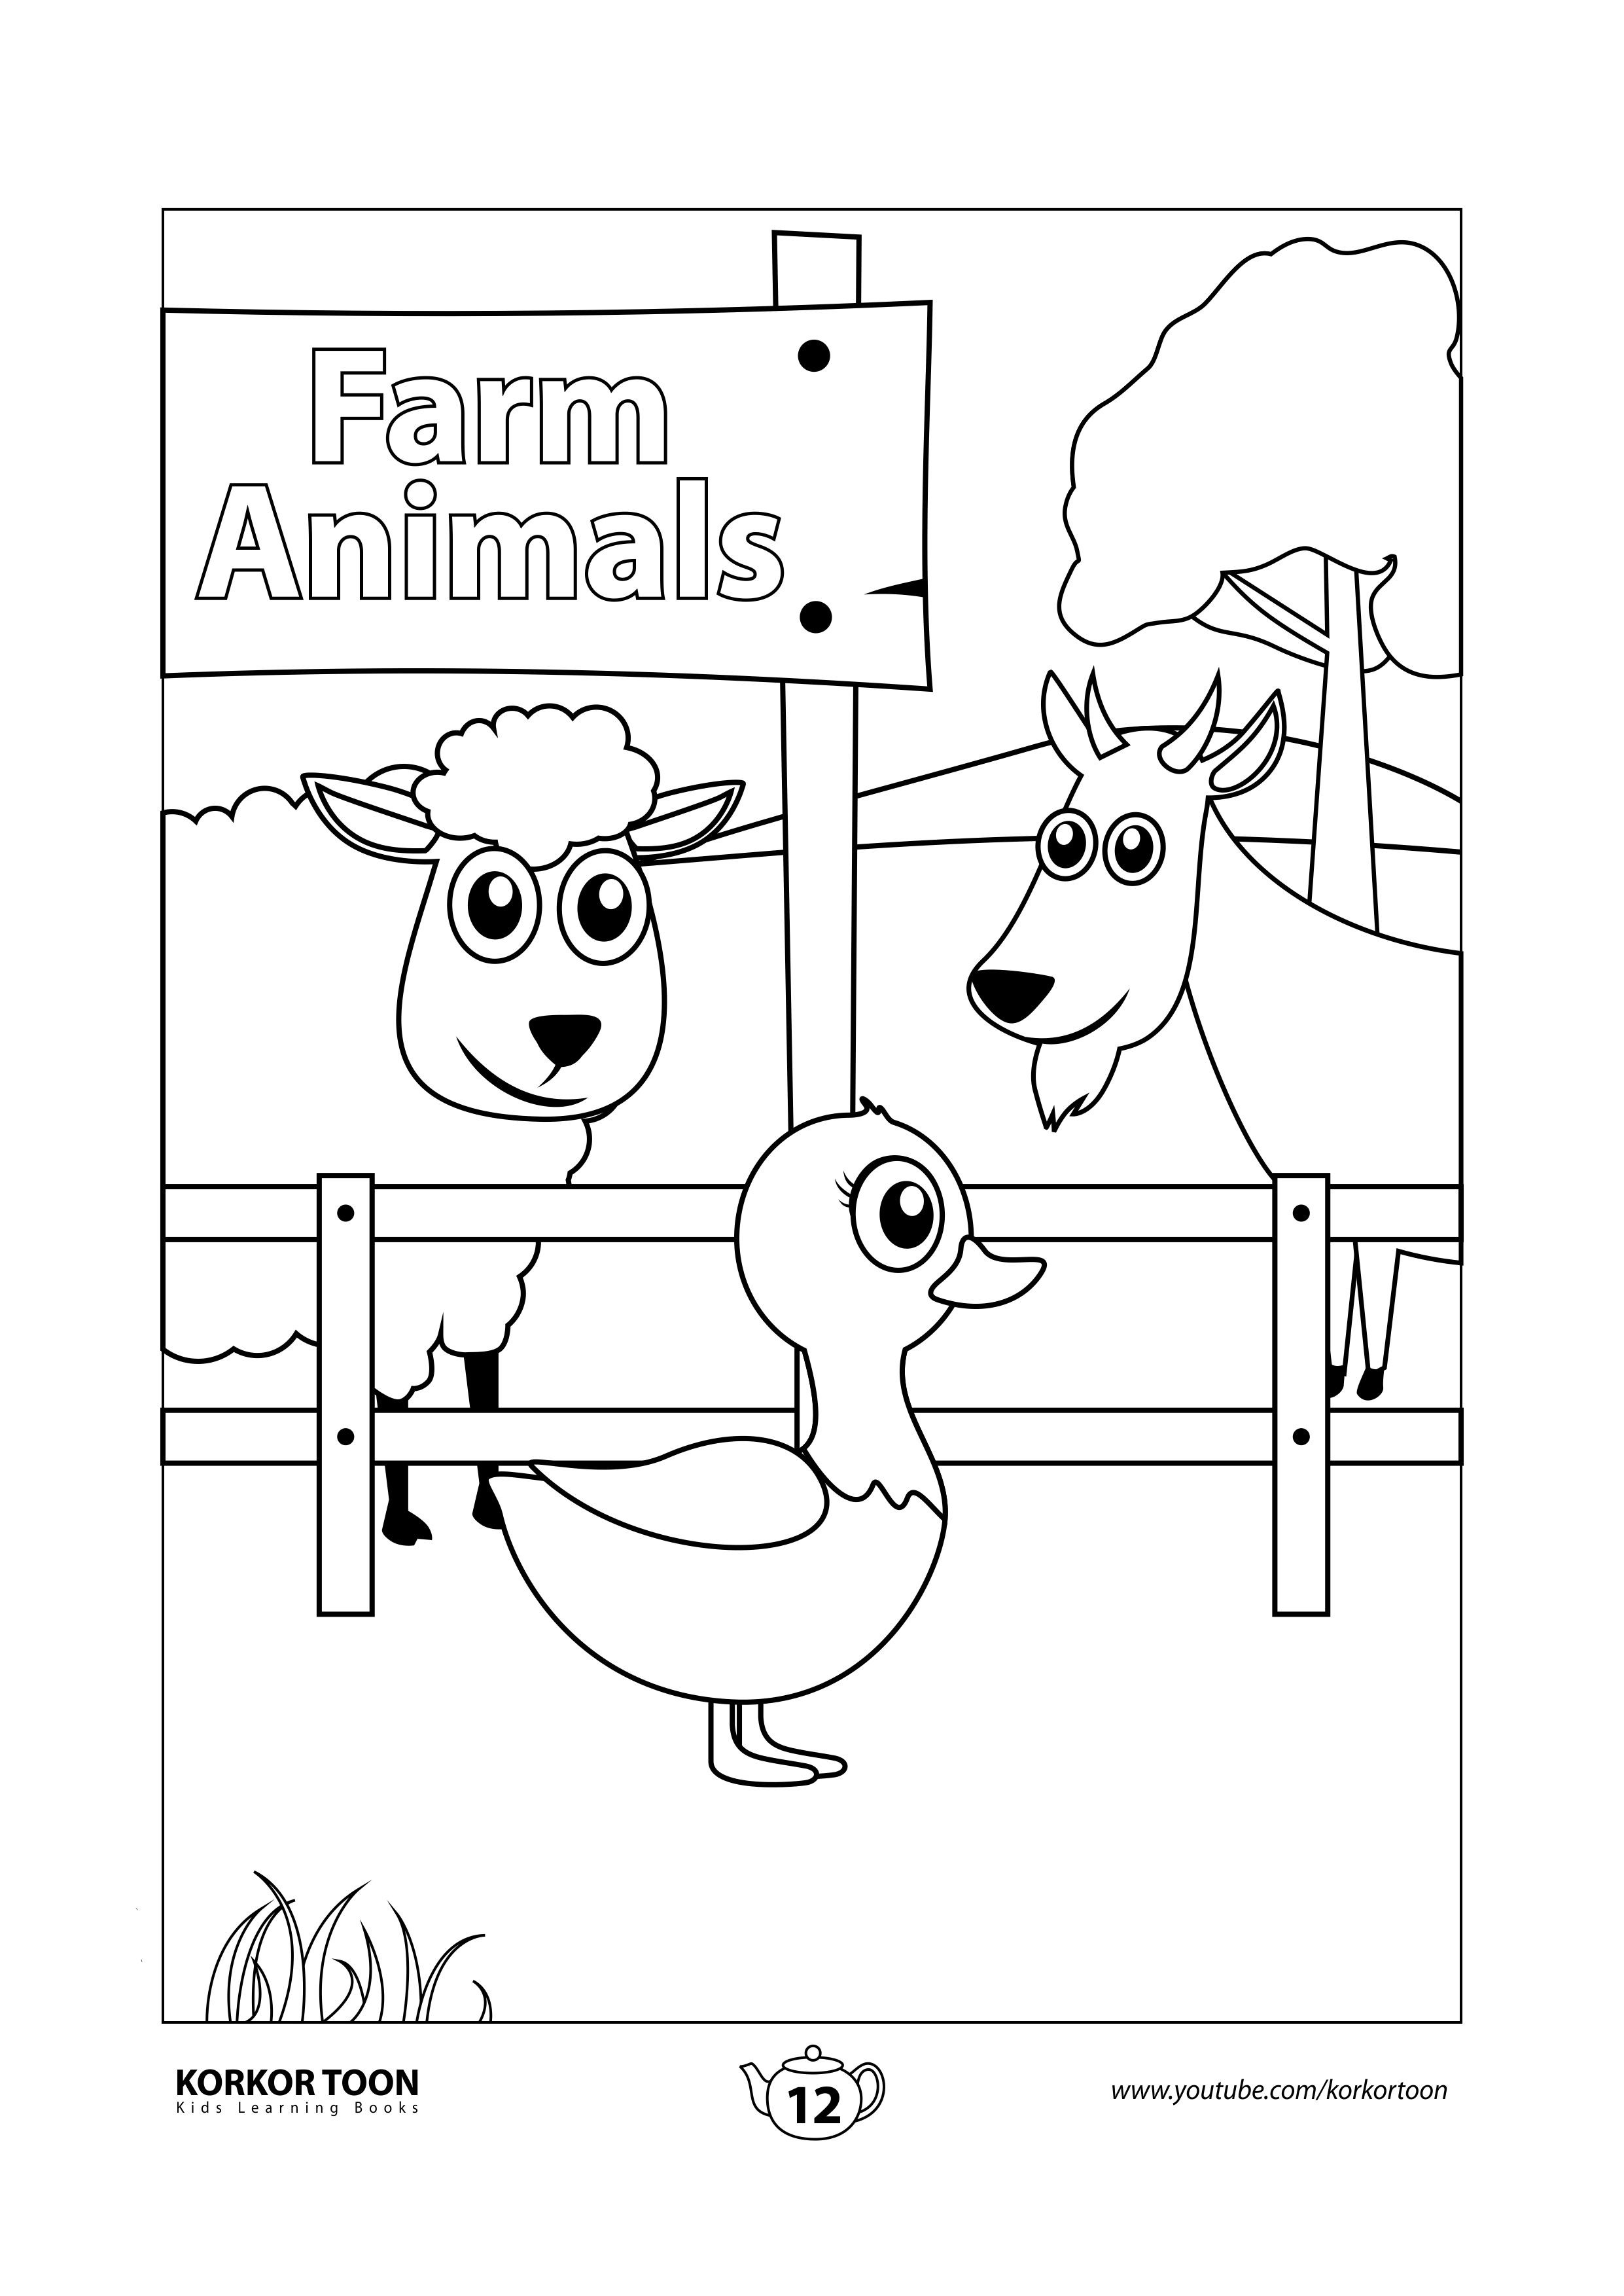 Farm Animals Coloring Page Farm Animals Coloring Book Coloring Books Animal Coloring Books Kids Coloring Books